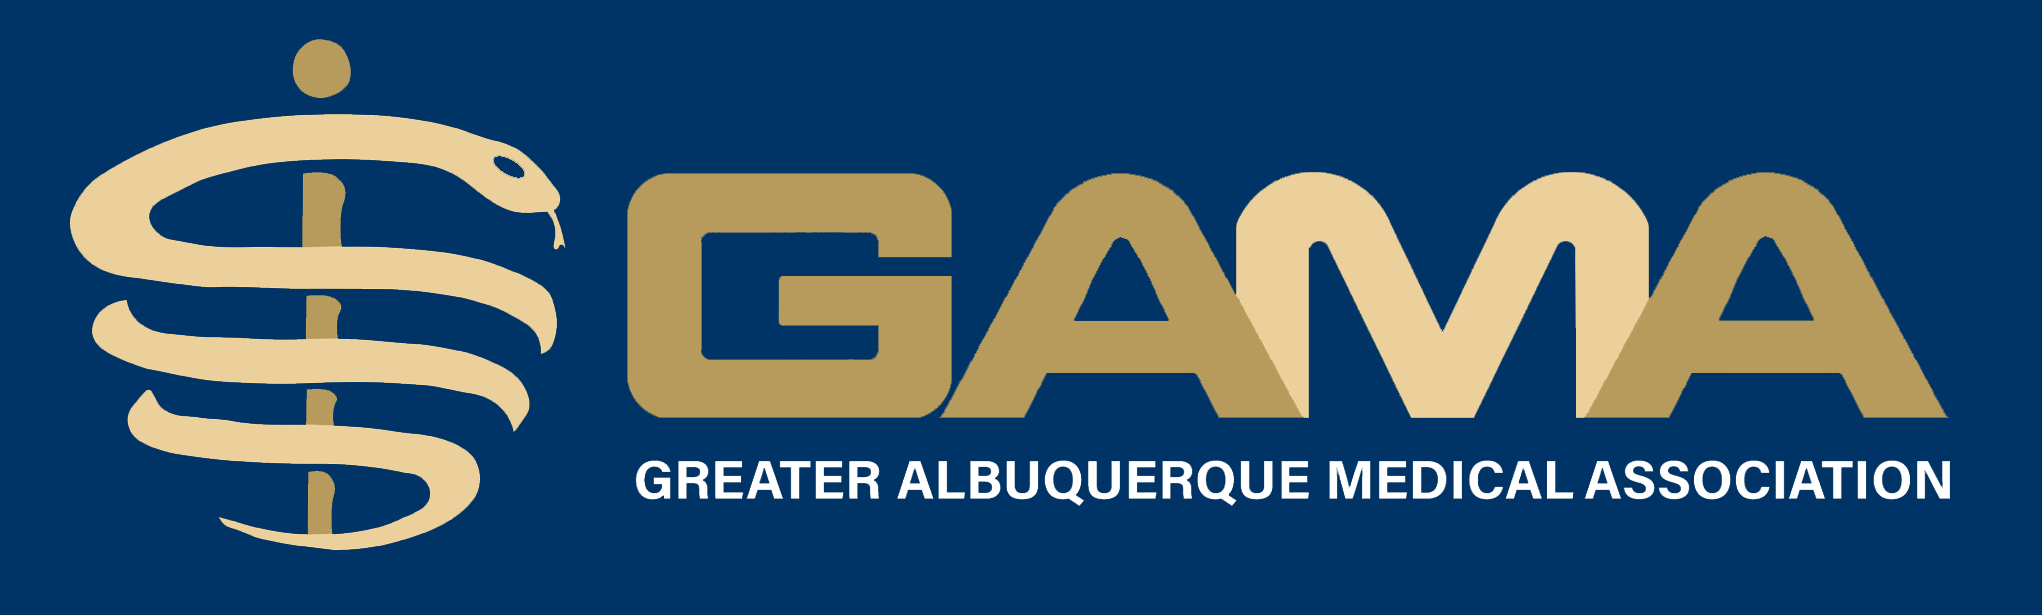 greater albuquerque medical association just another wordpress site